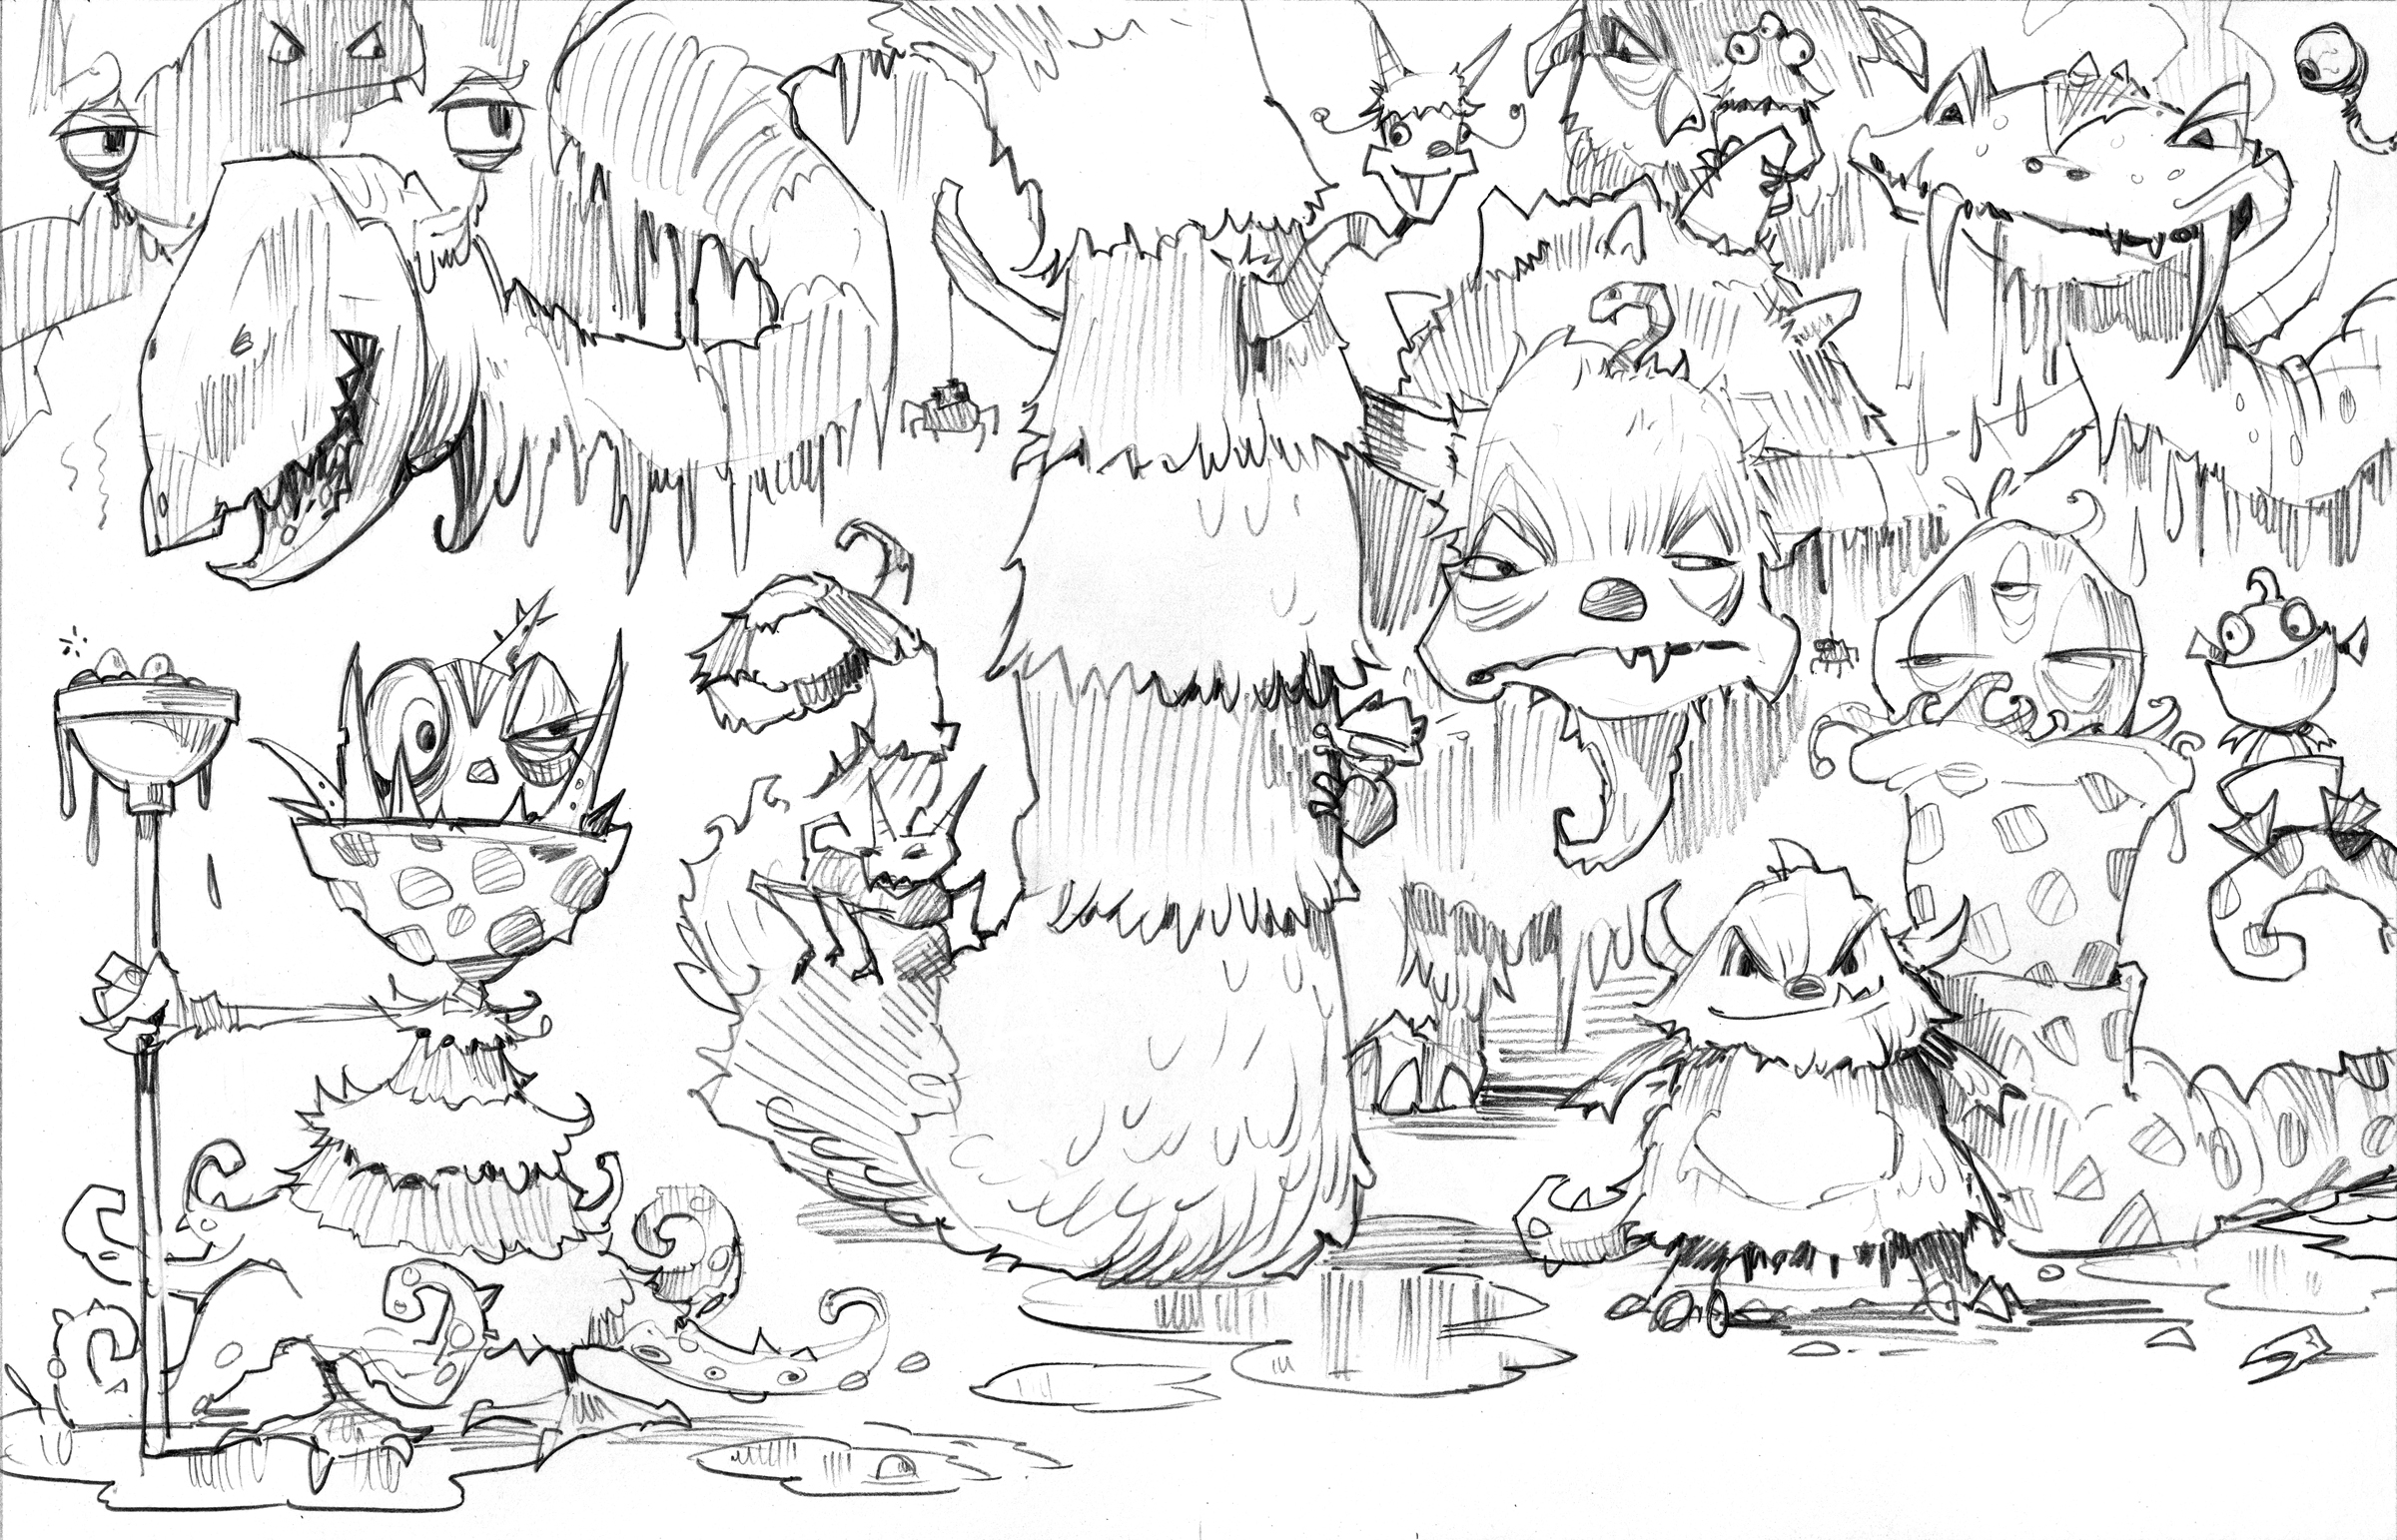 An early sketch for the cover. The idea was always to have a crowd of monsters, with no clue as to which one is the most terrible, but this was too crowded.